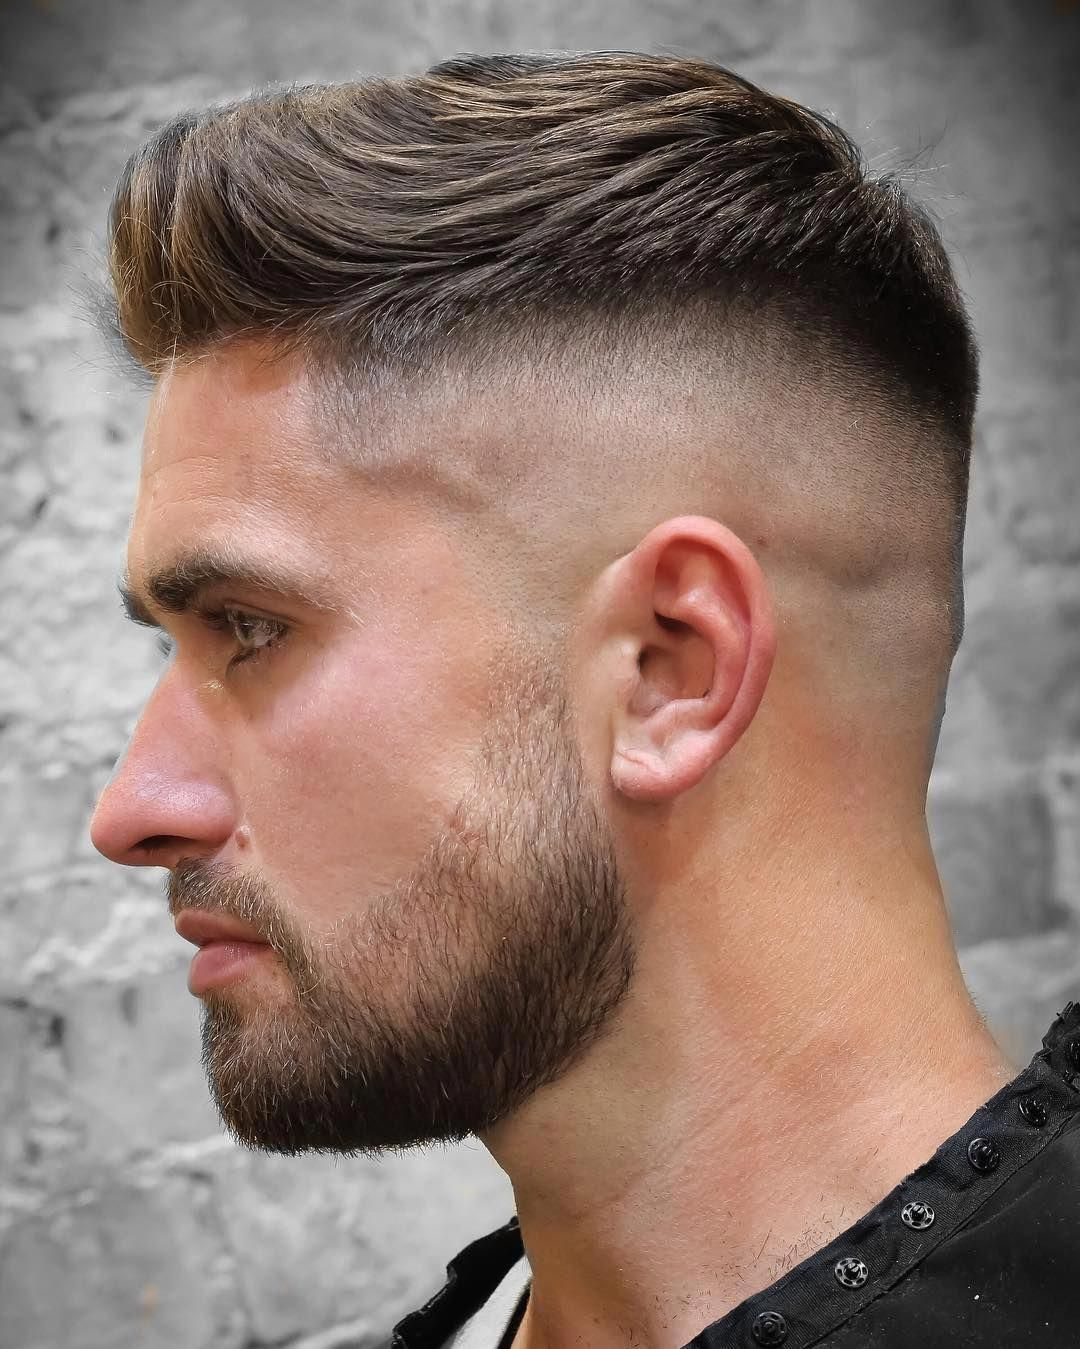 Great Looking Taper Mens Hairstyles Tapermenshairstyles Mens Haircuts Fade Mens Haircuts Short Mens Hairstyles Short